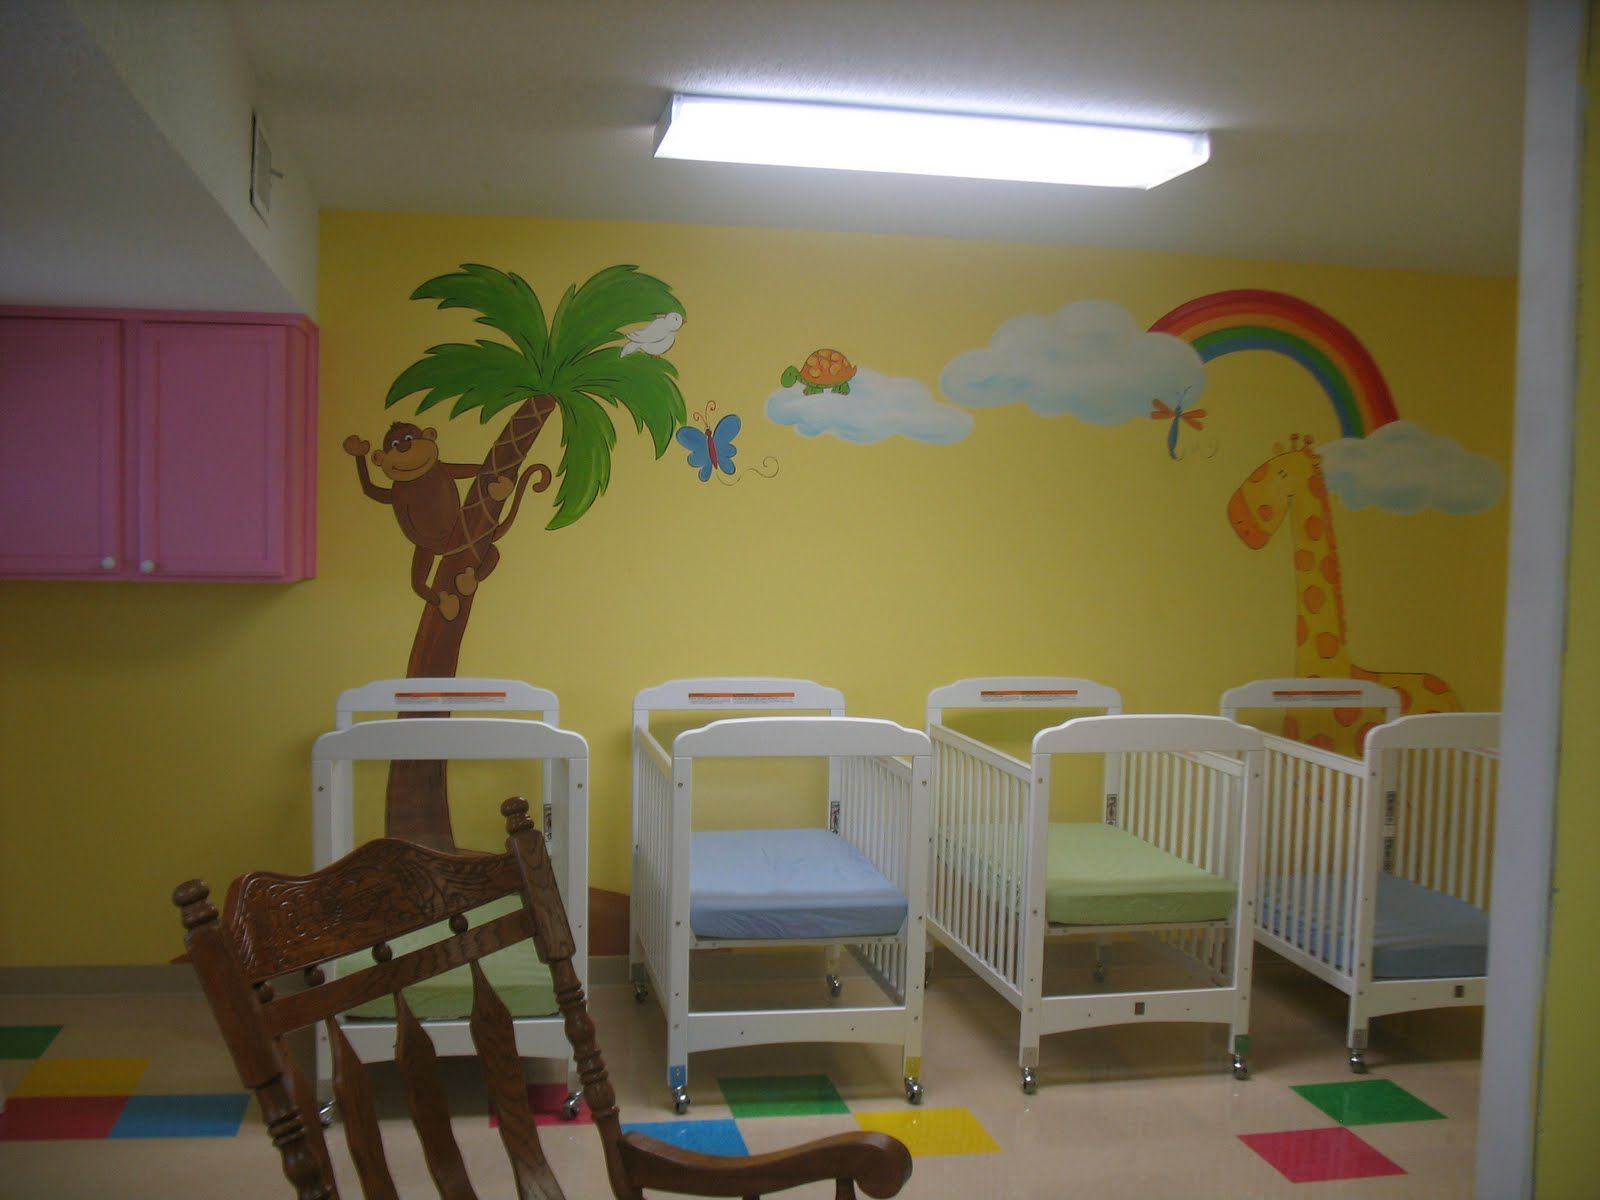 Church Nursery Themes | Church Nursery Mural | church nursery ideas ...